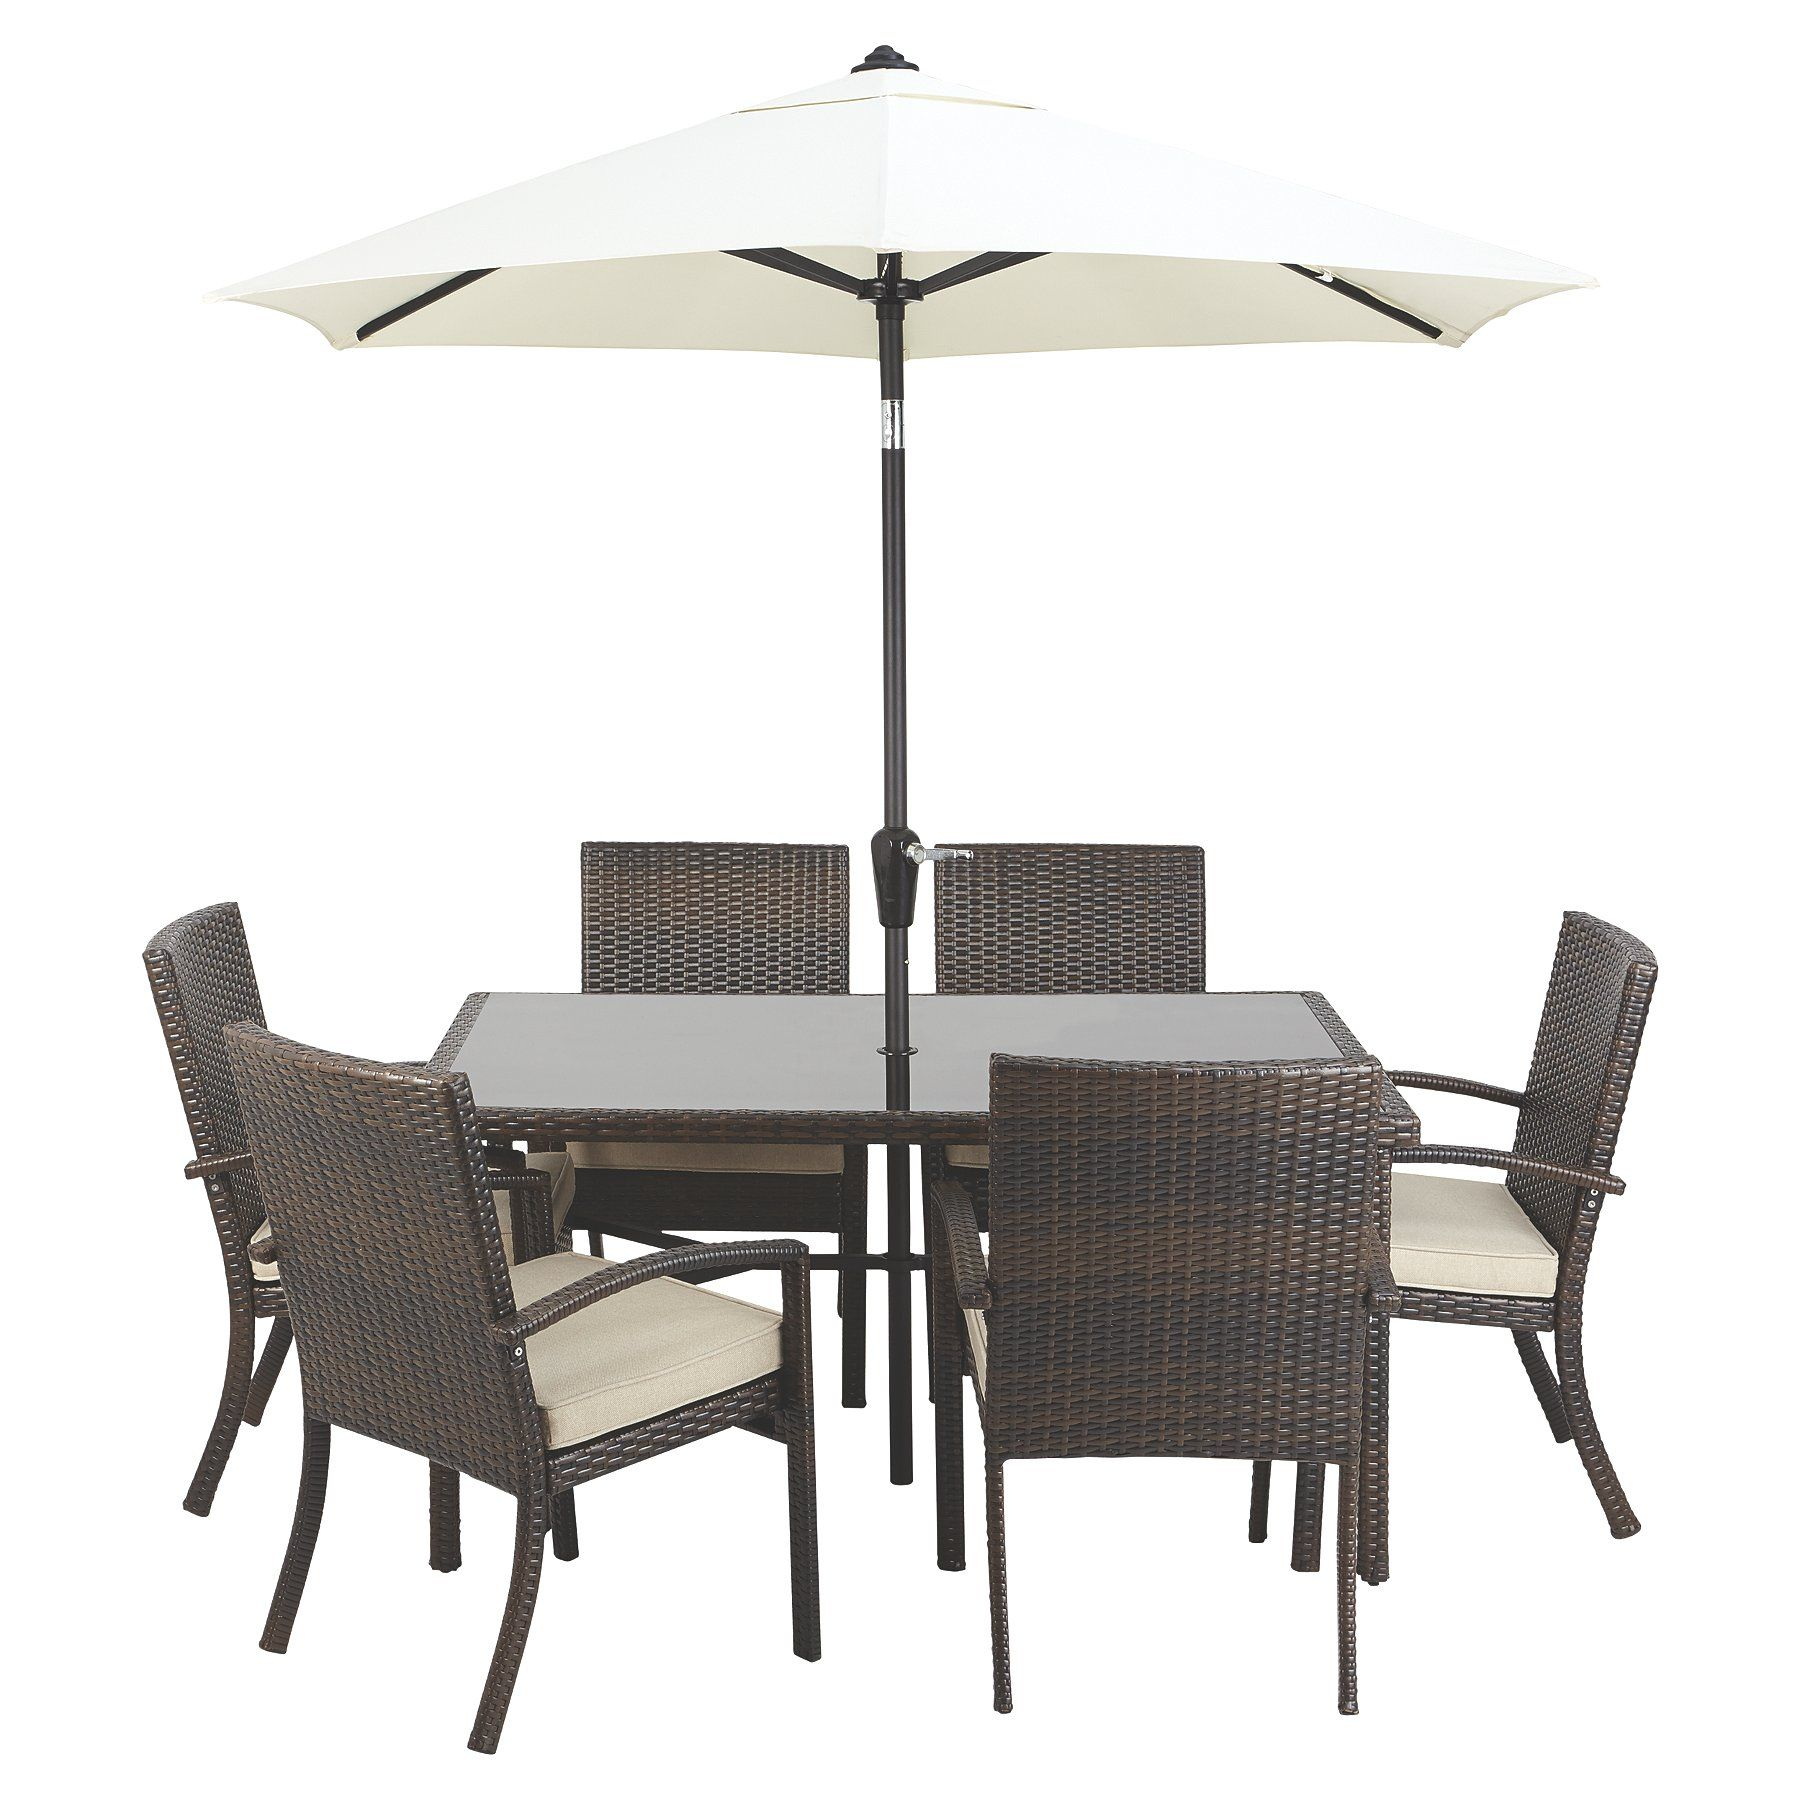 Garden Furniture. Buy home & garden online at George. Shop from